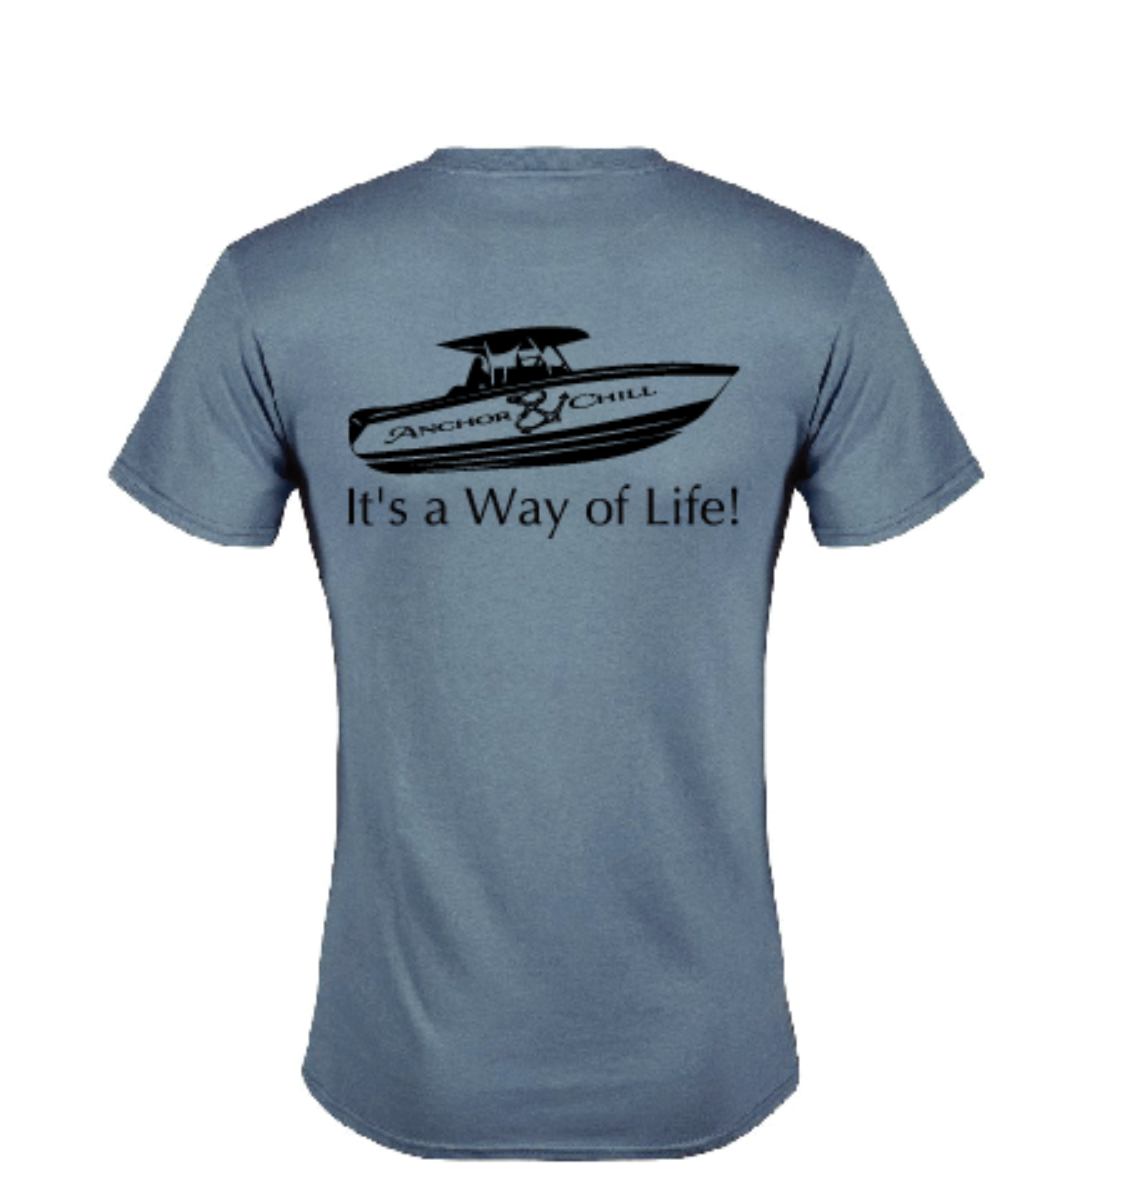 Slate Anchor & Chill Boat T-shirt